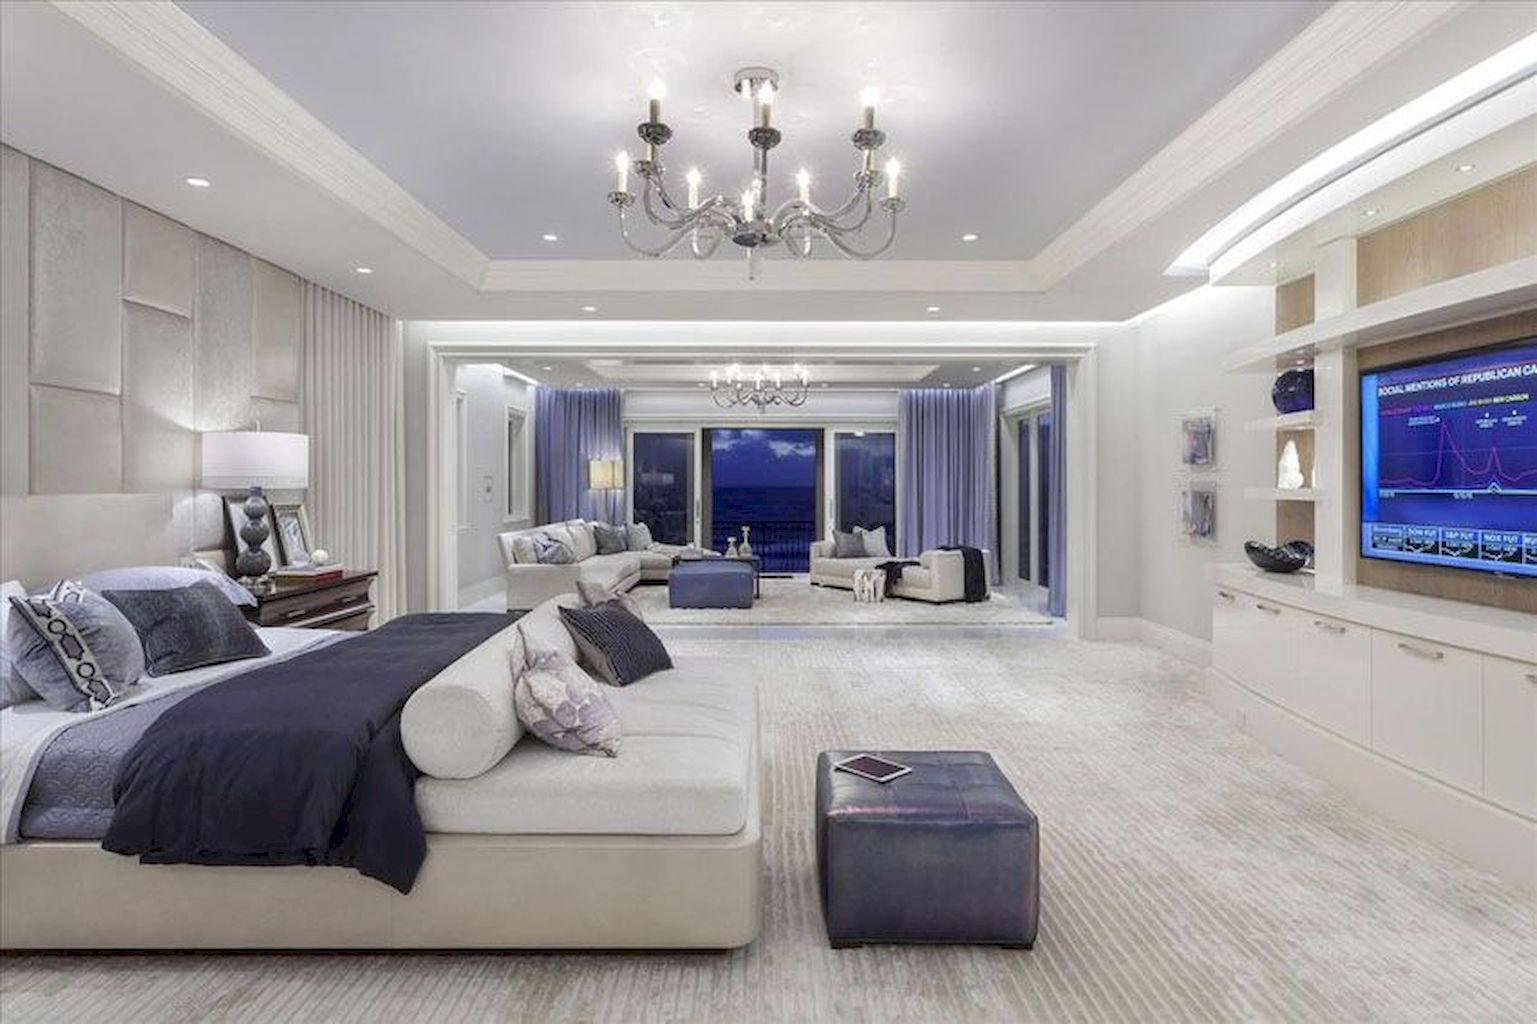 80 Romantic Master Bedroom Ideas Setyouroom Com Modern Luxury Bedroom Dream Master Bedroom Luxury Bedroom Master